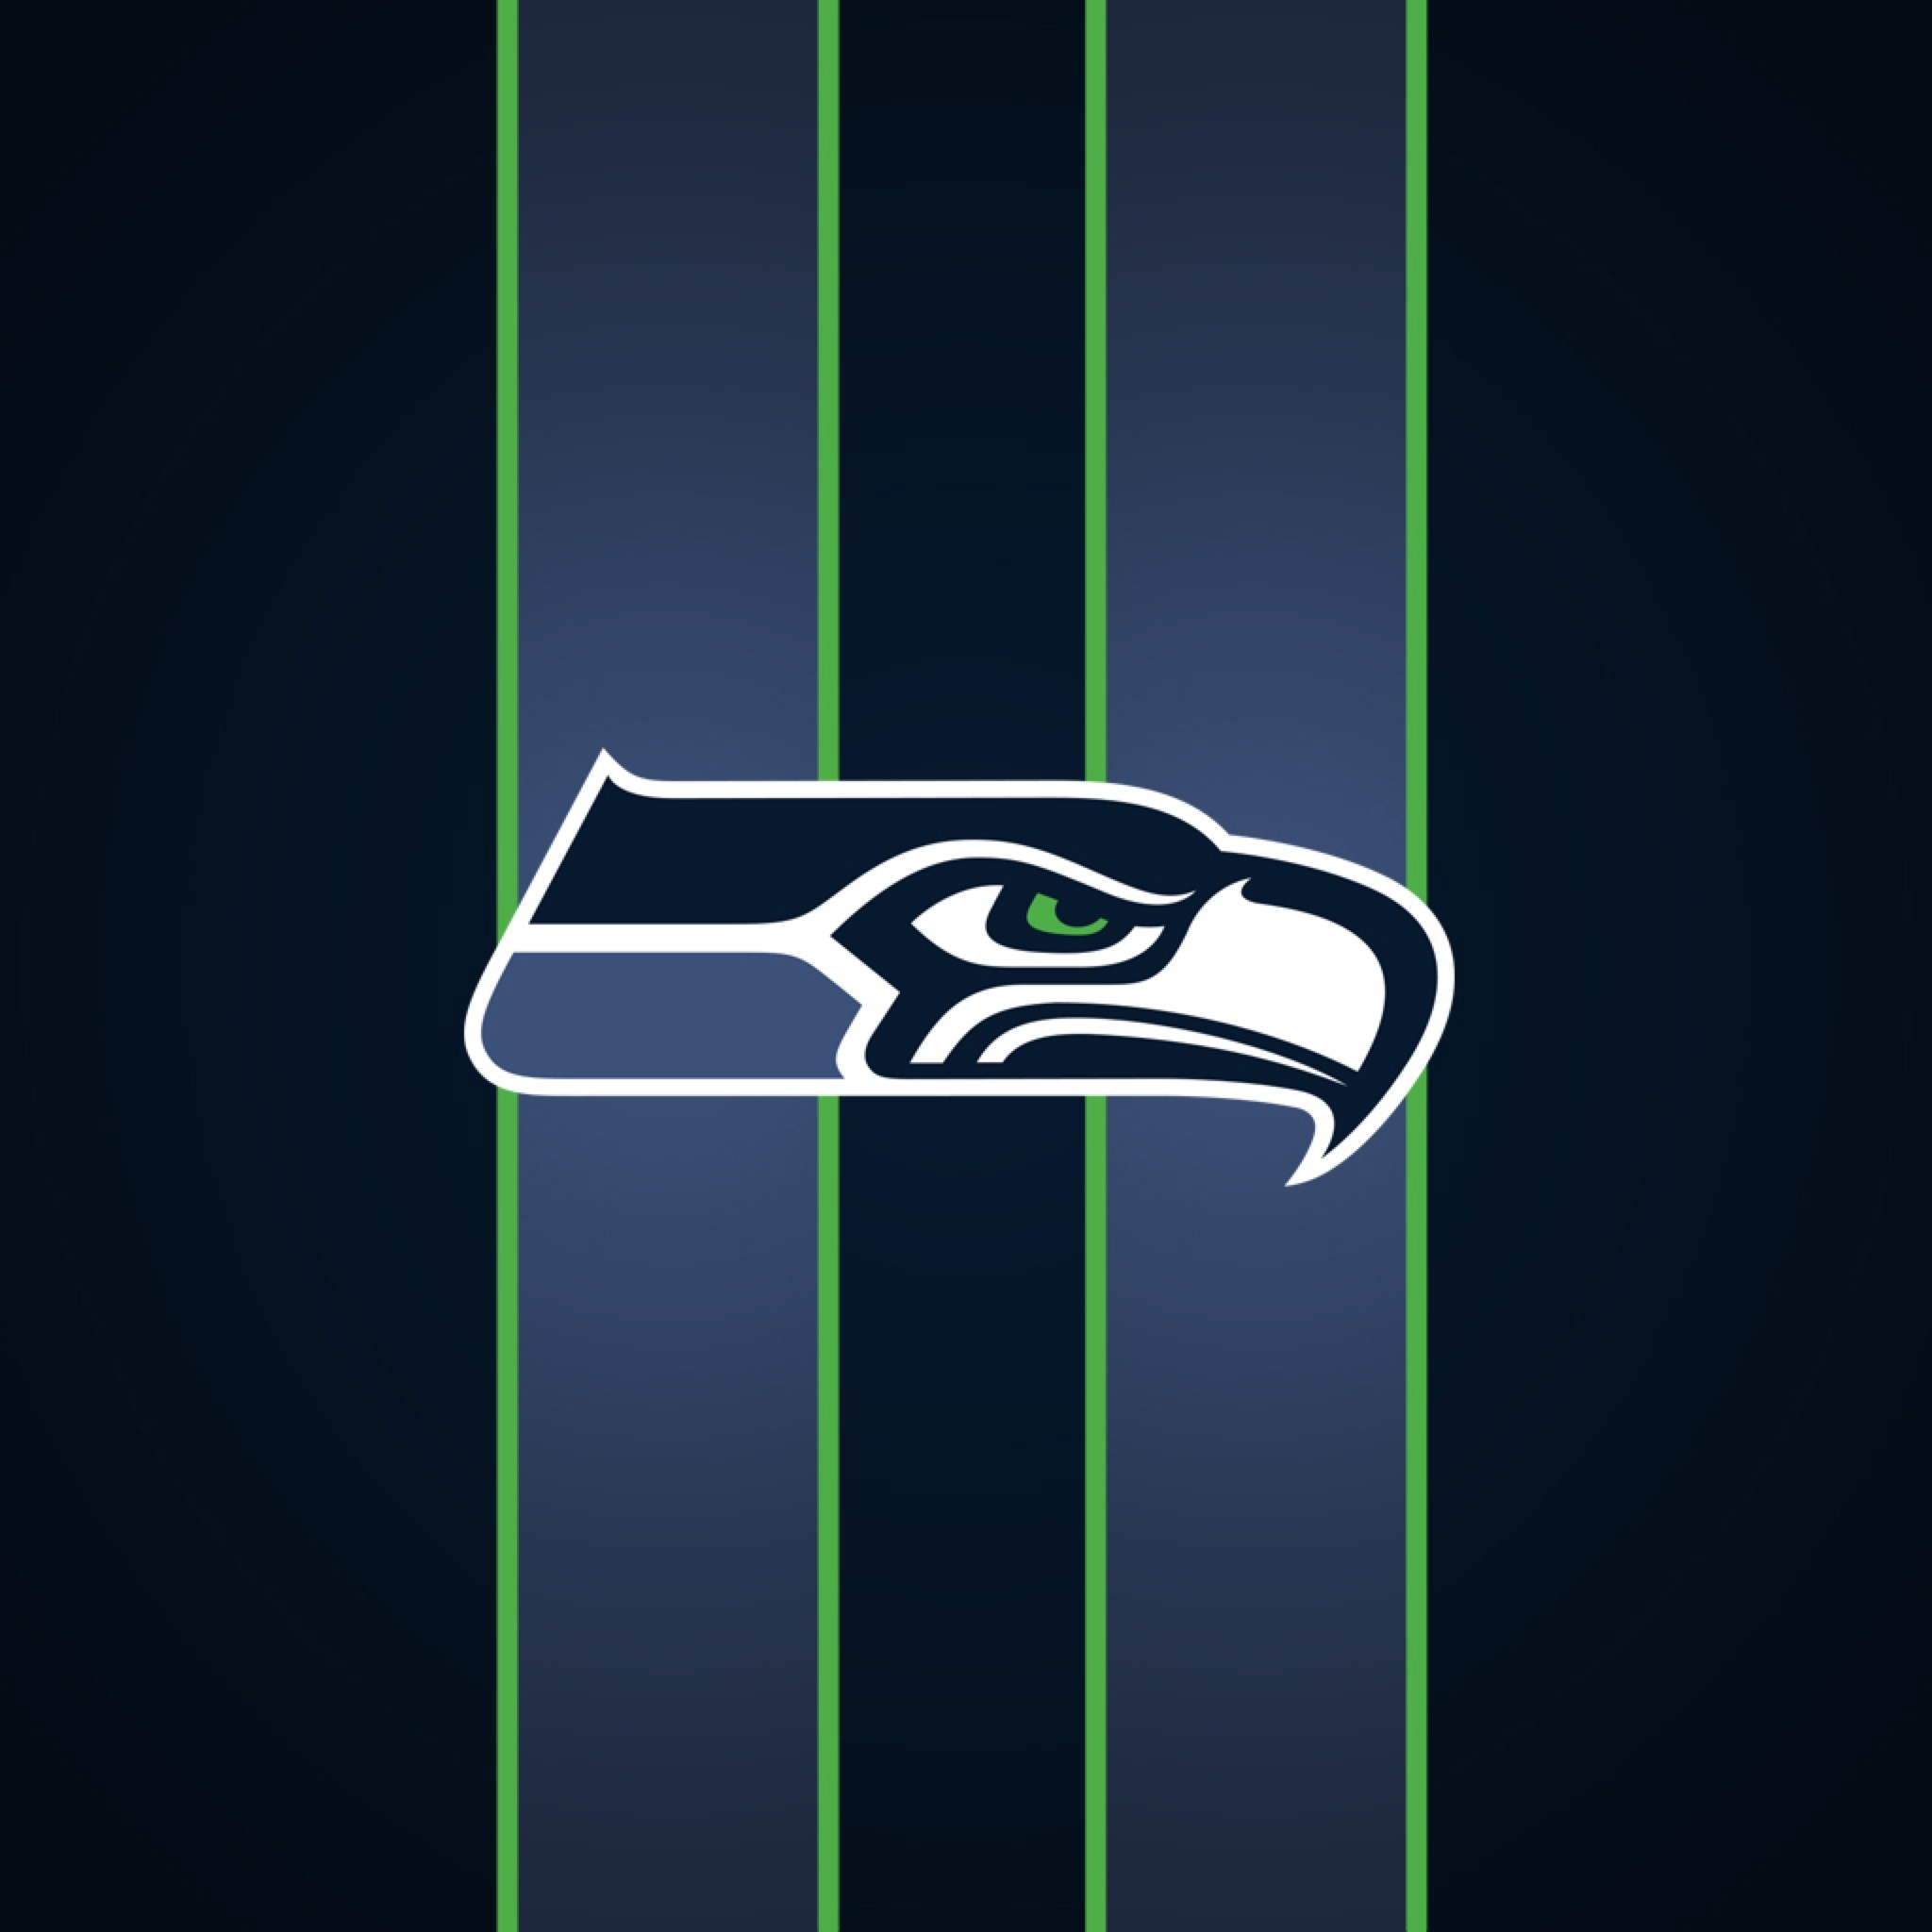 … Wallpaper Weekends: Super Bowl Sunday Wallpapers for the iPhone and iPad